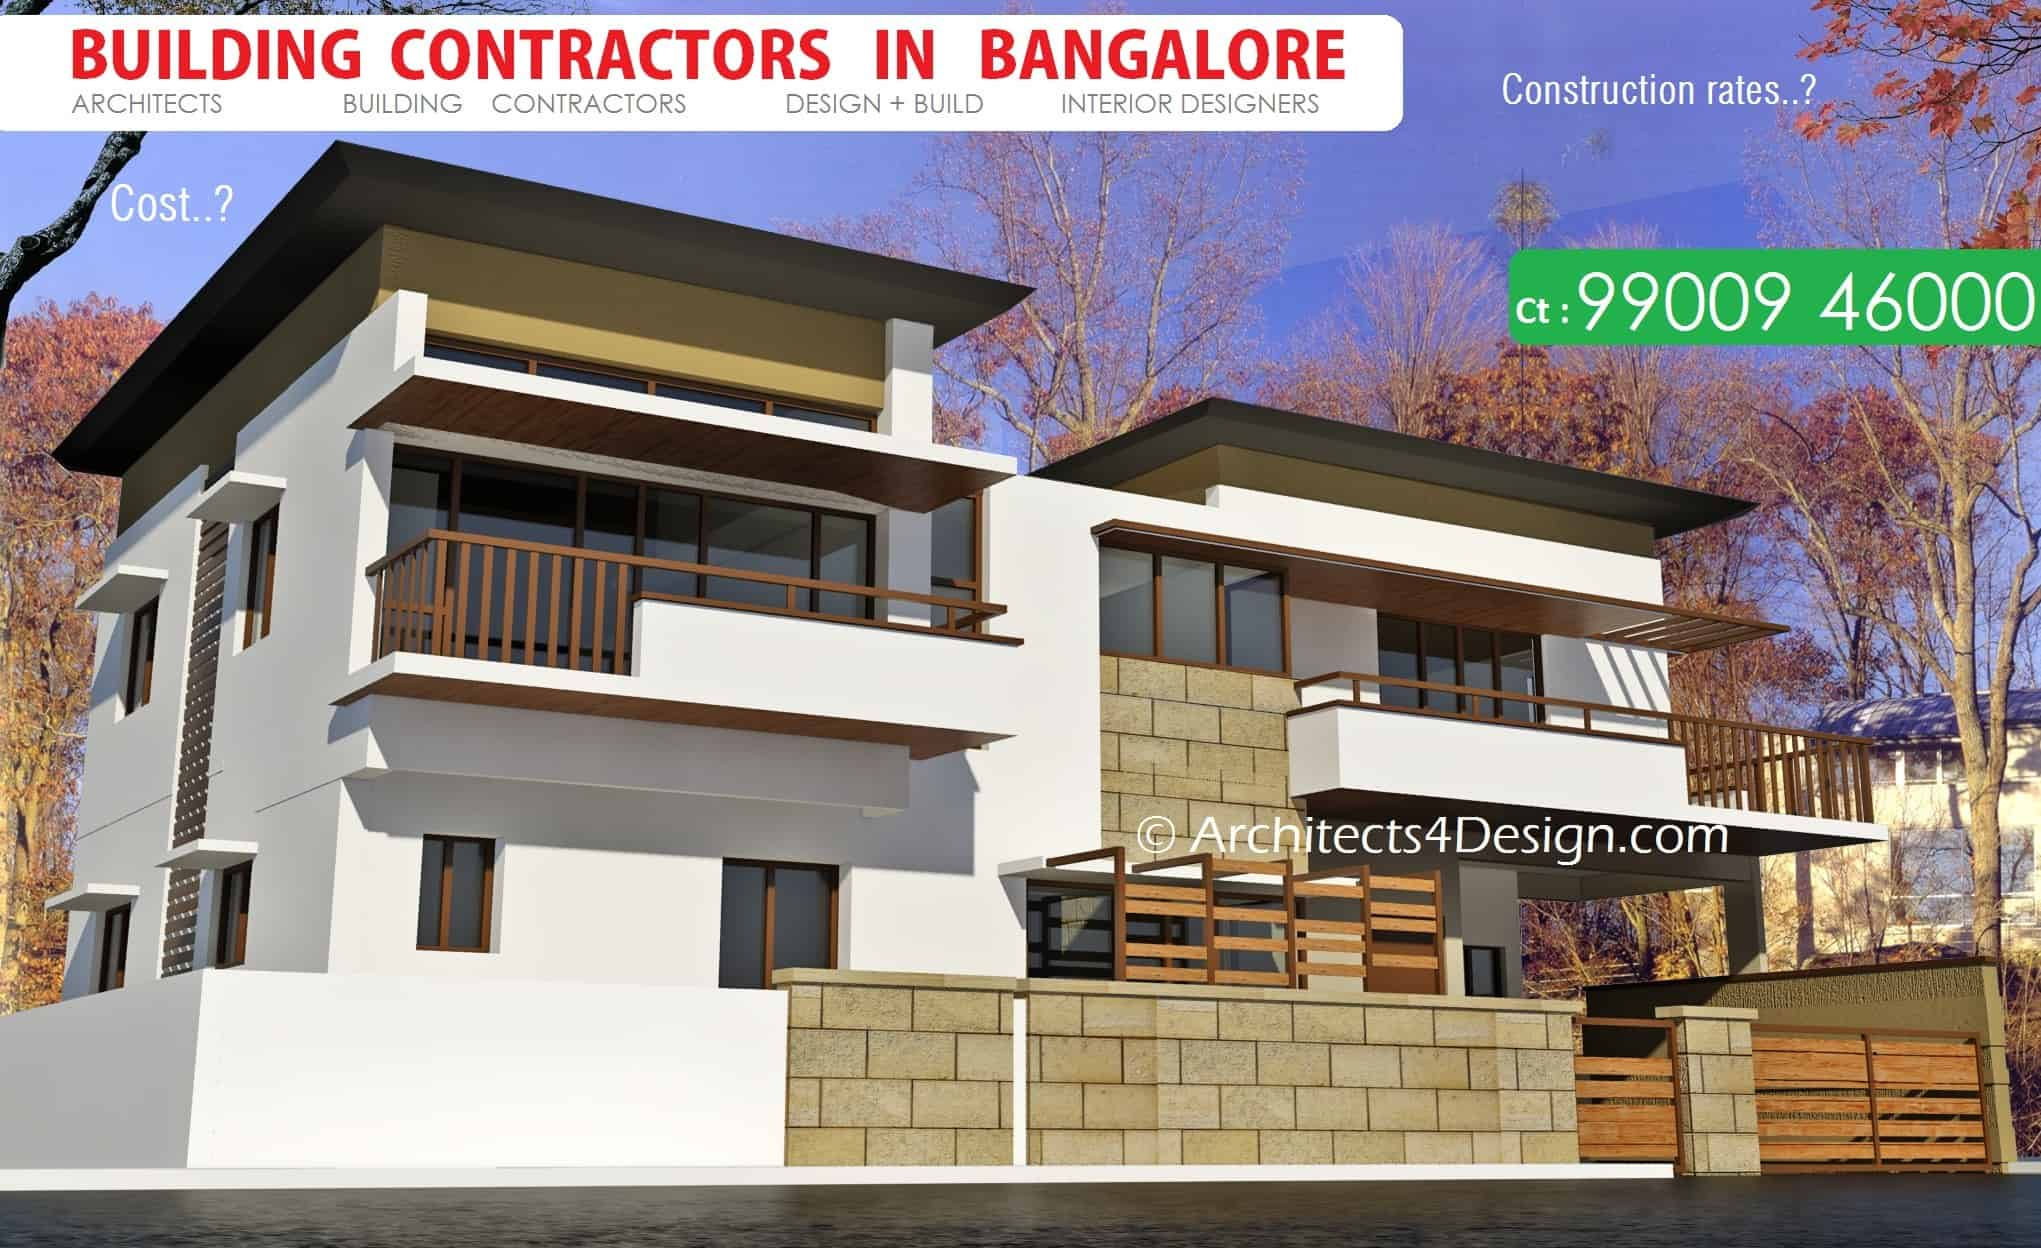 BUILDING CONTRACTORS in Bangalore know current Construction rates in